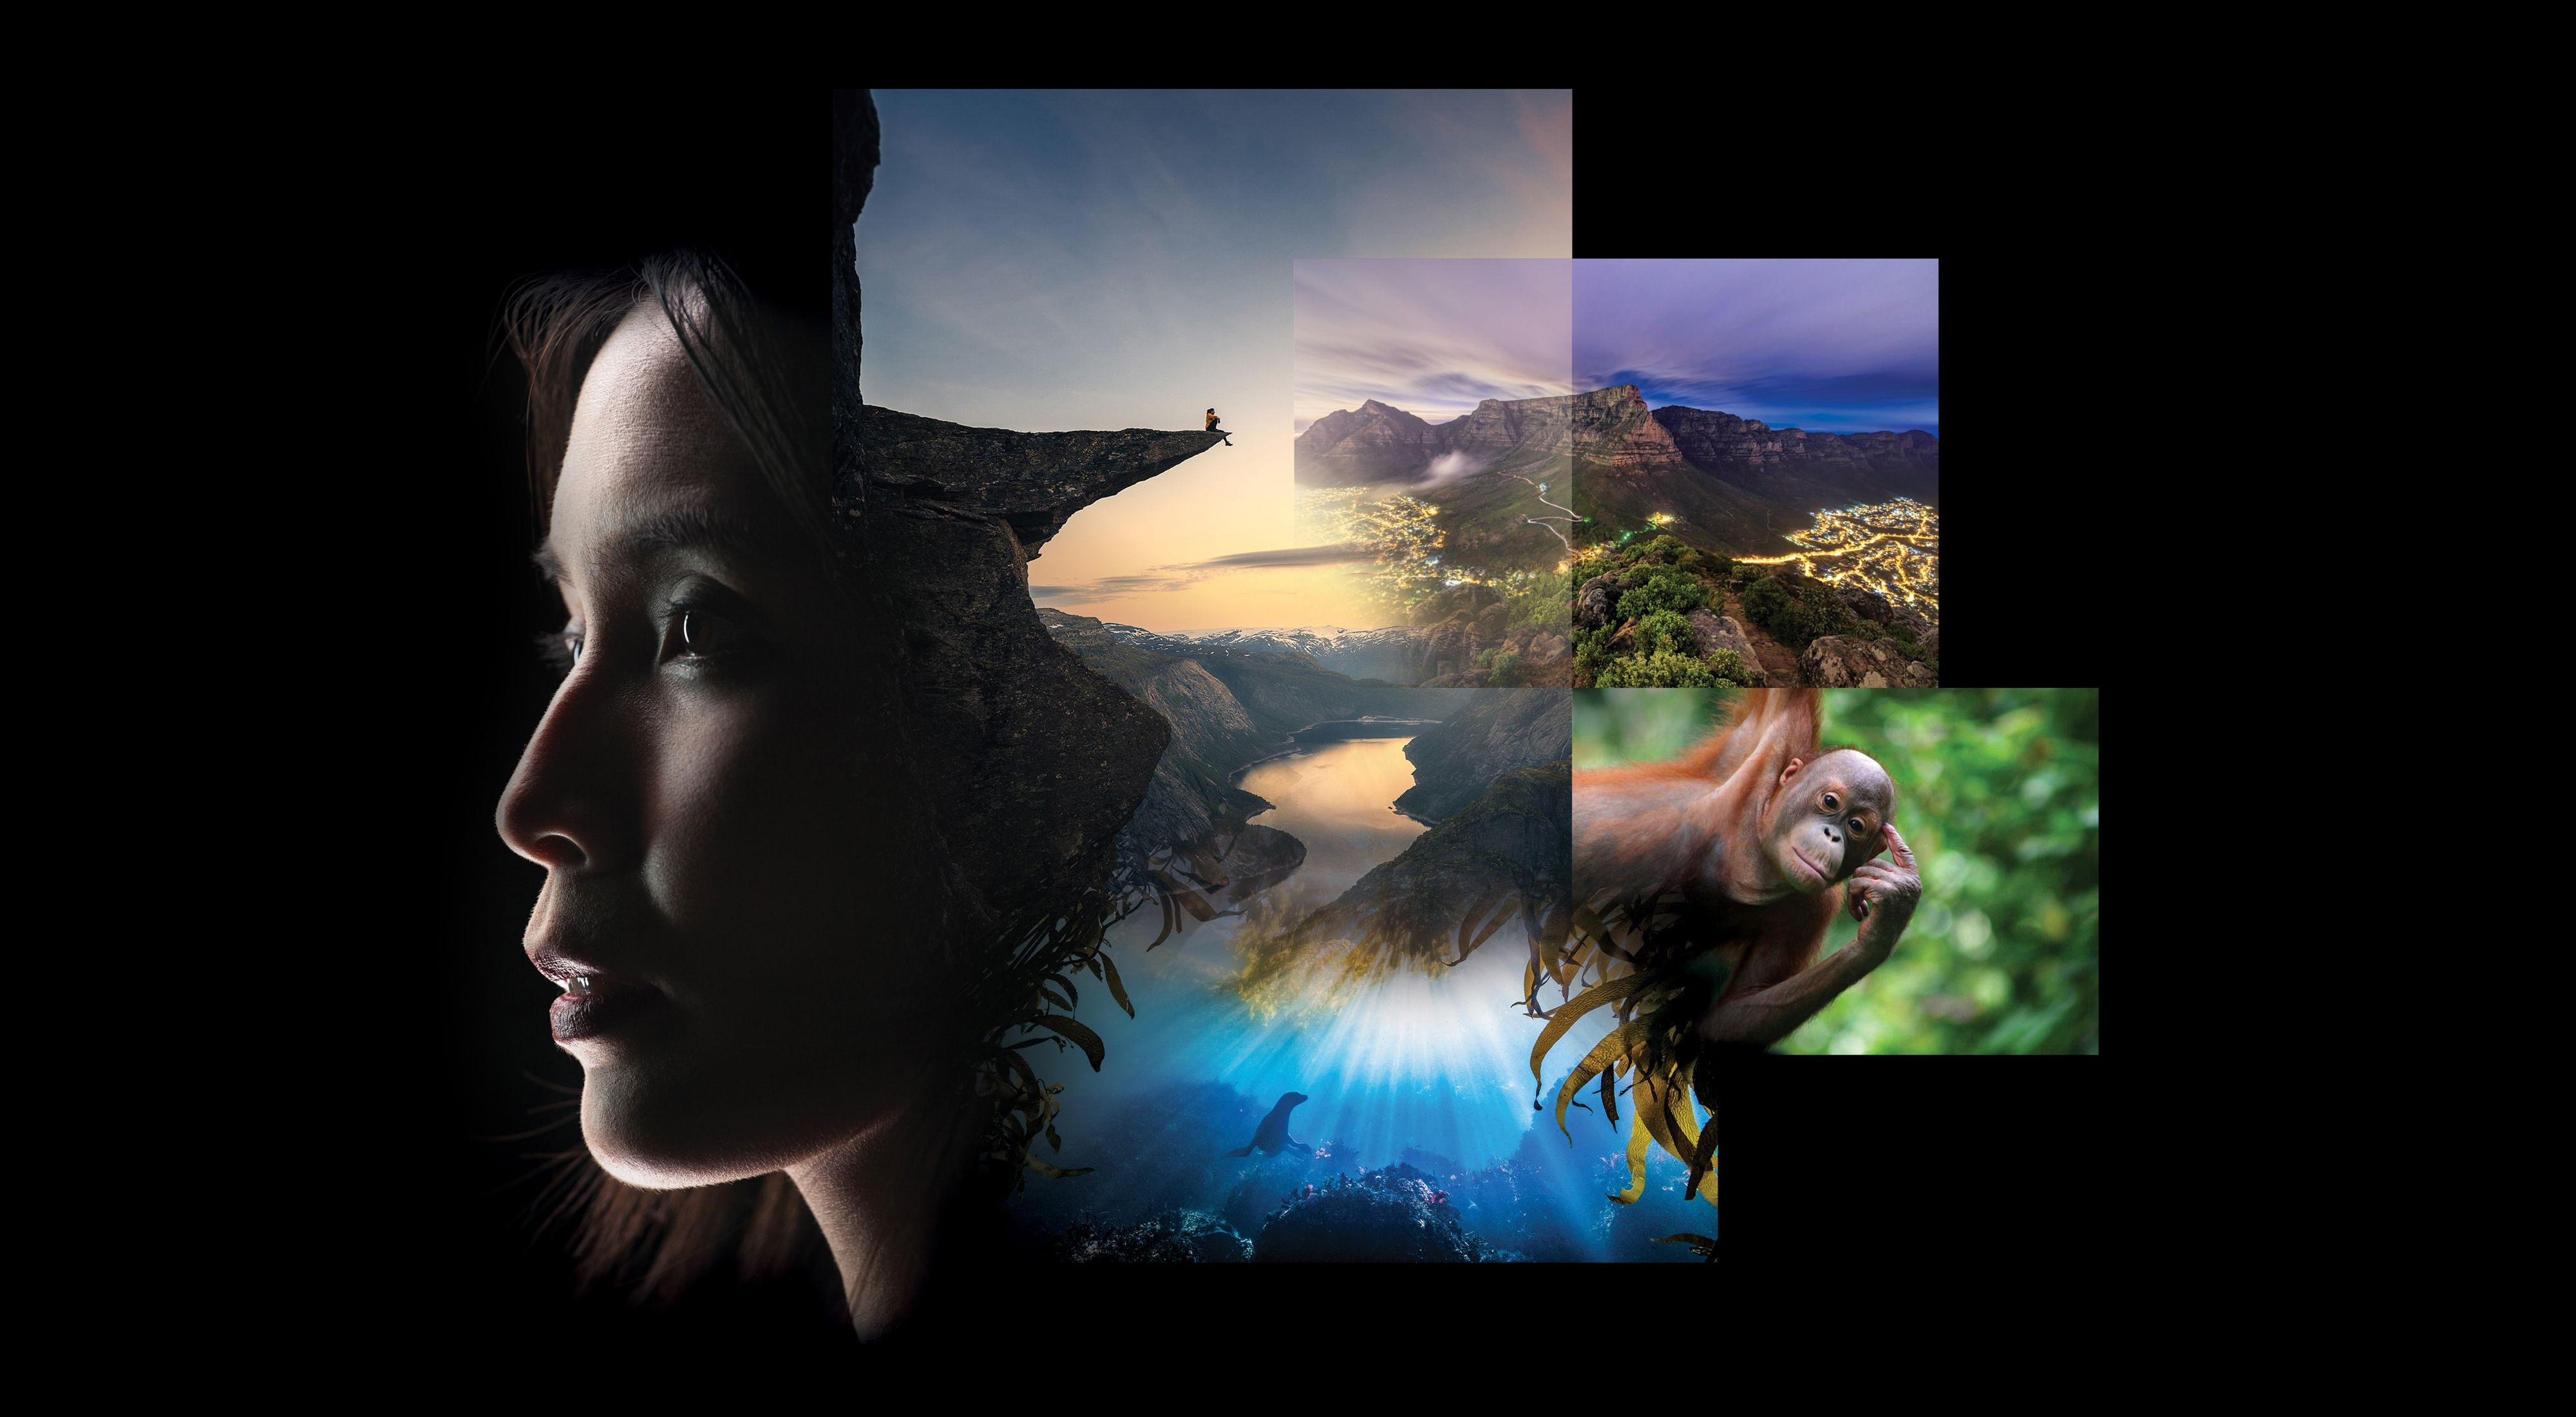 Composite image of natural scenes and a woman's face.